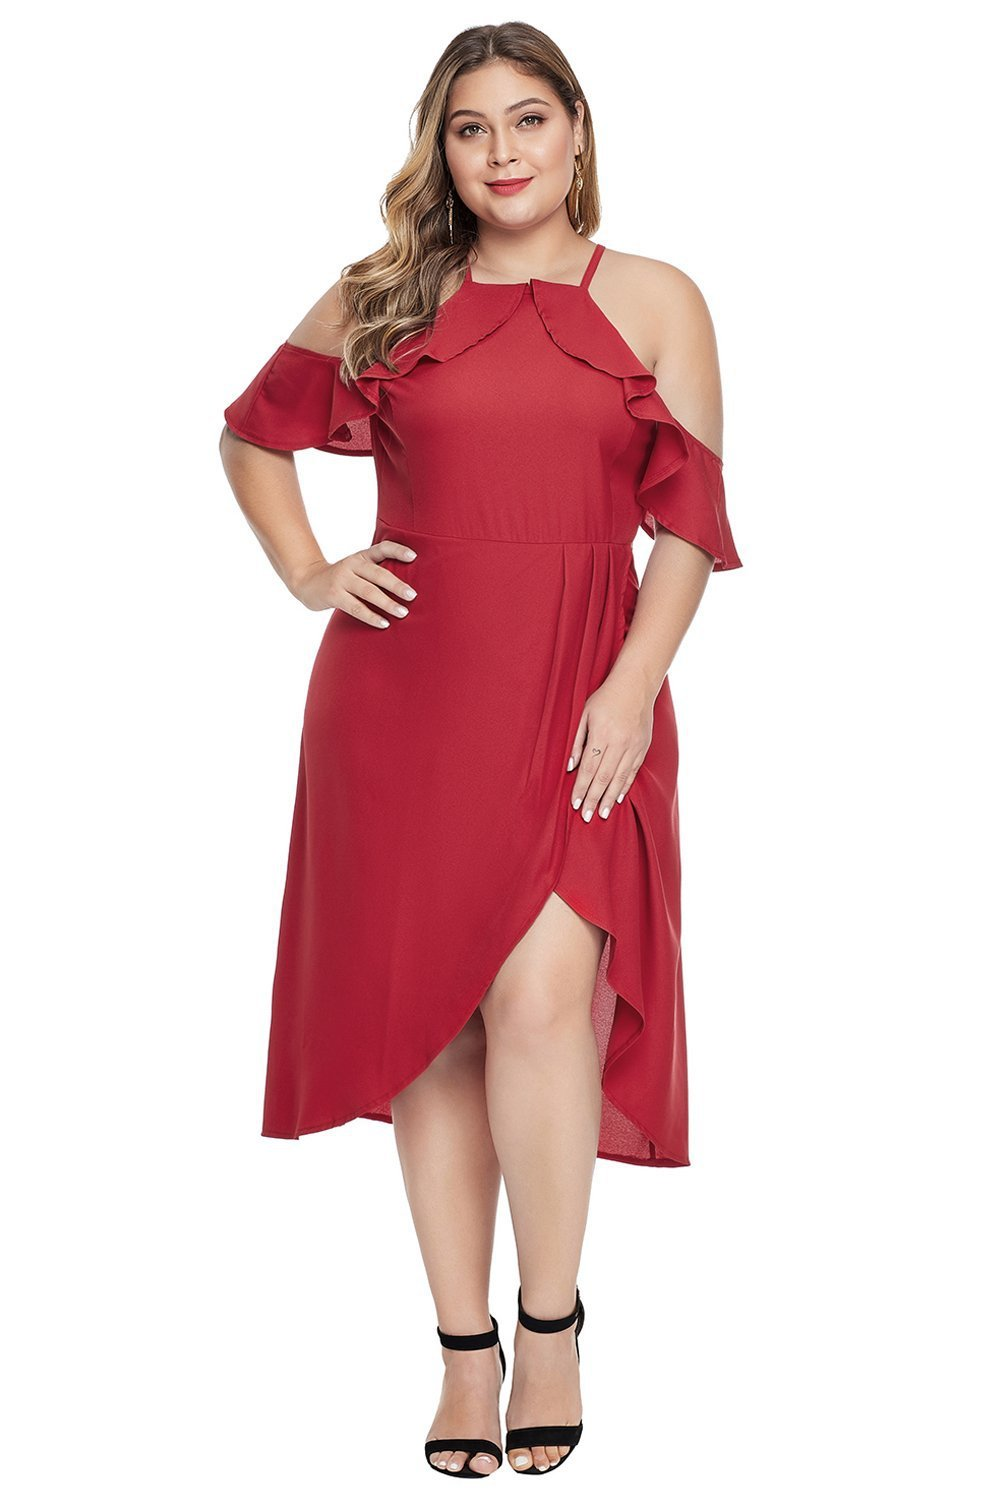 plus size Off Shoulder Dress XL / AUS 14 - 16 / Red aa. Jasmine Dress - Red